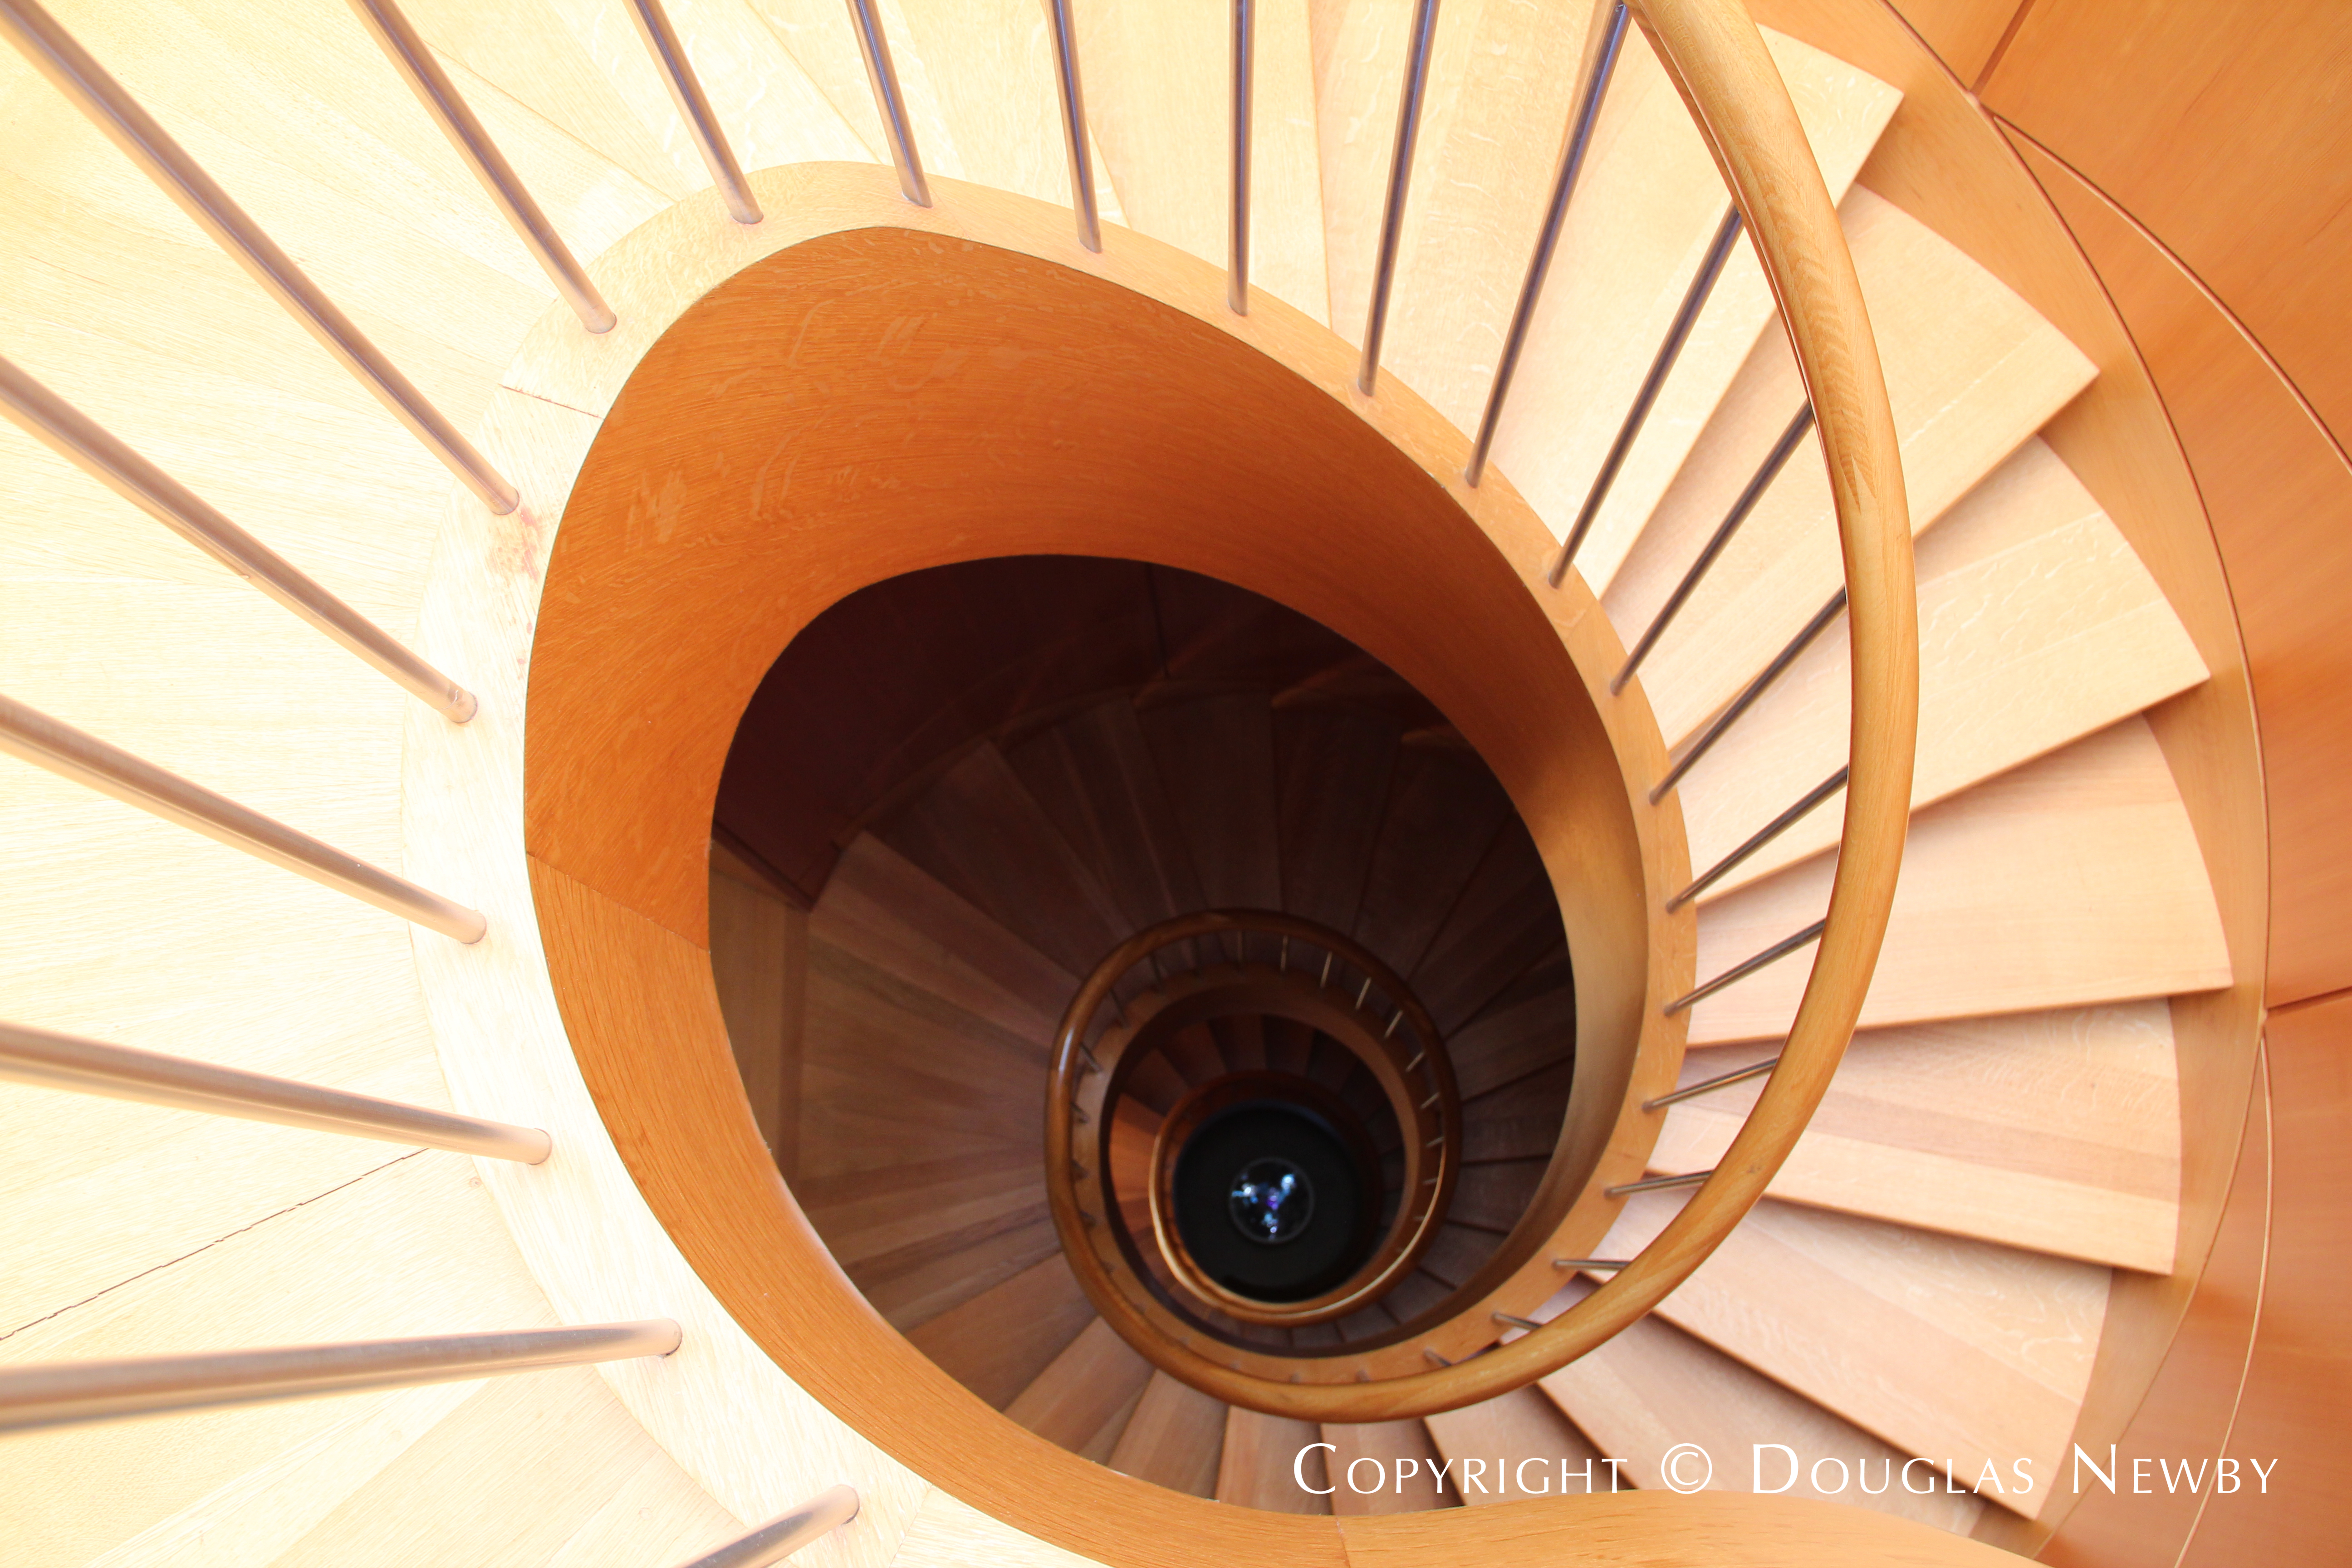 Circular Stairs Wind Their Way Up to Glen Abbey Estate Home Observation Deck